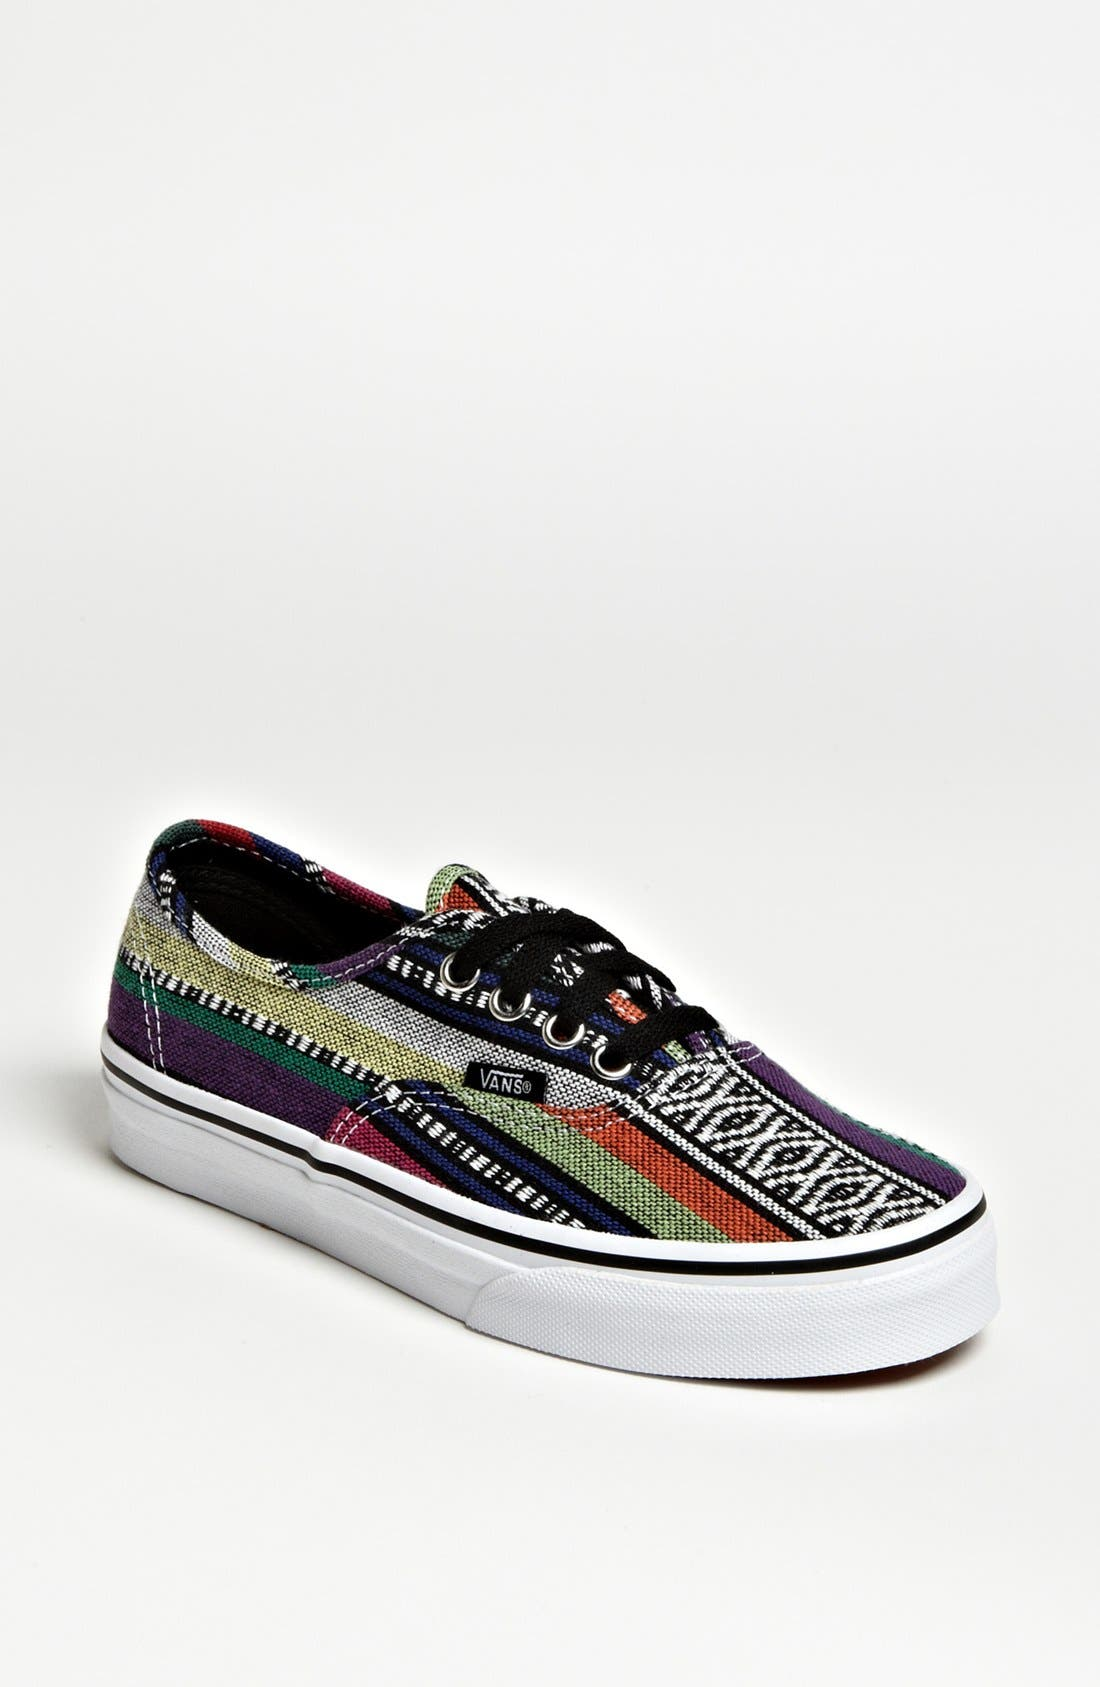 Main Image - Vans 'Authentic - Guata' Sneaker (Women)